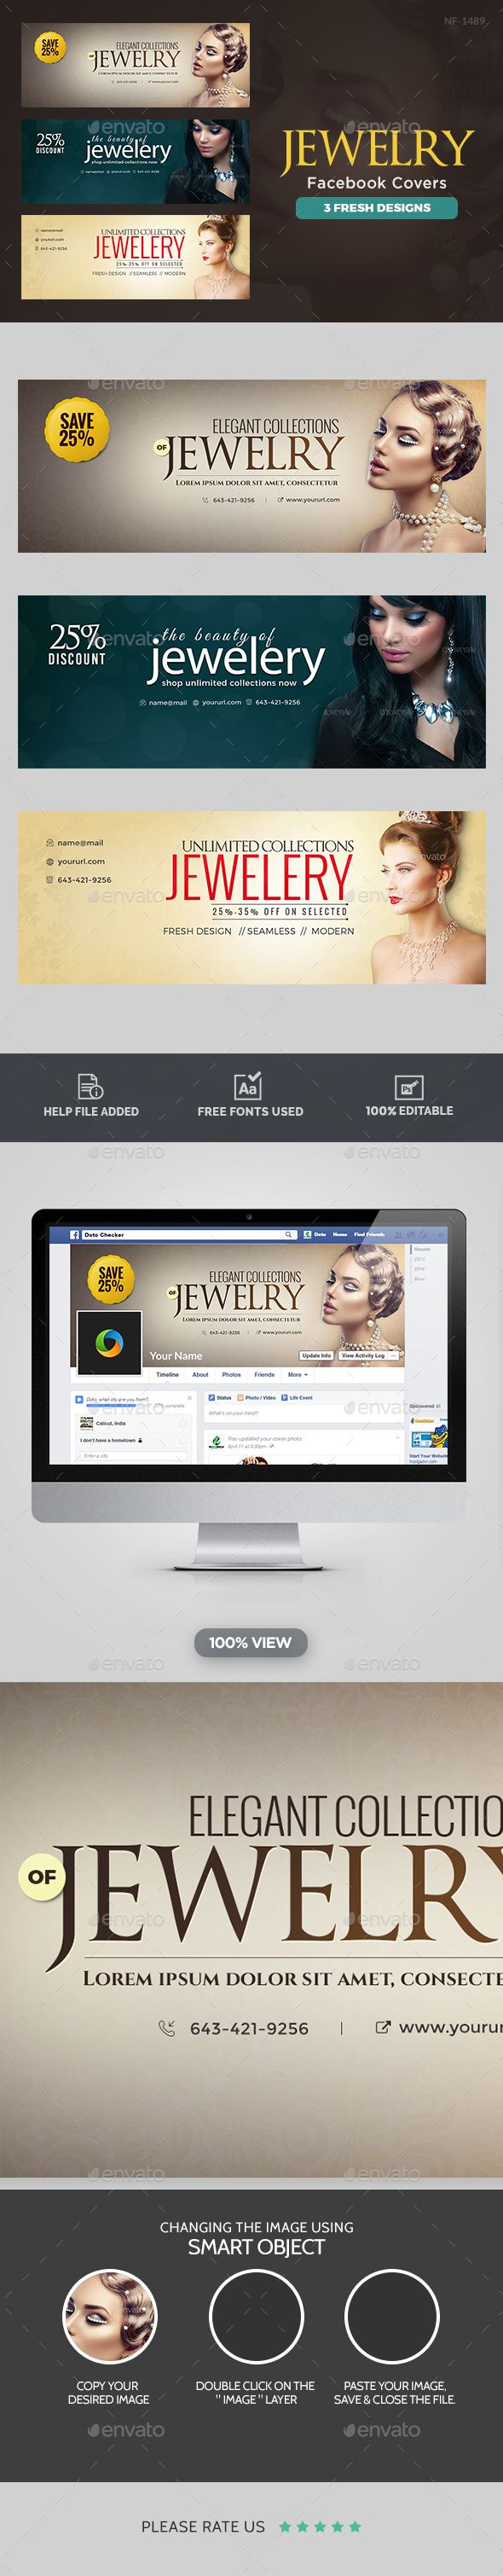 Jewelry Facebook Covers - 3 Designs  — PSD Template #wedding #jewelry #business…